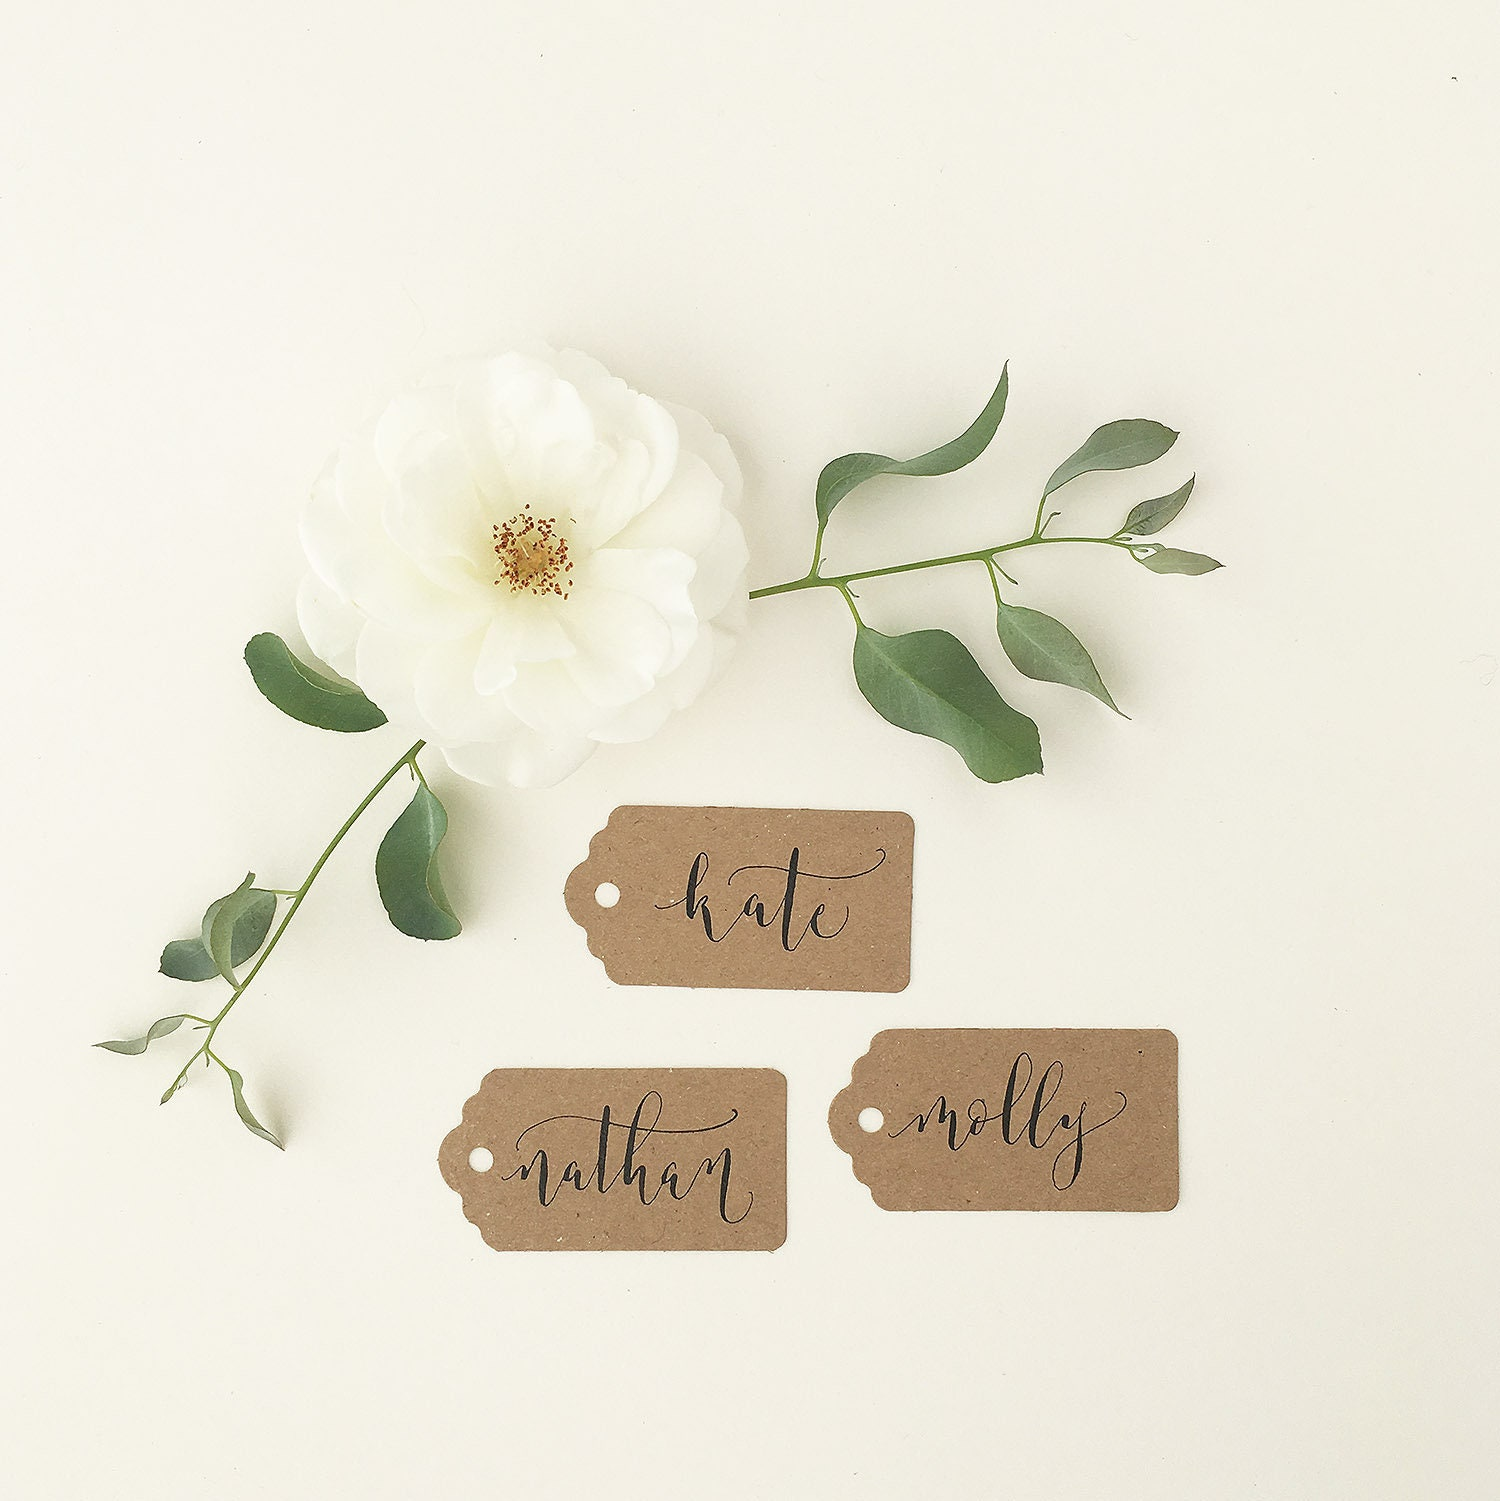 affordable rustic luggage tags with calligraphy wedding place